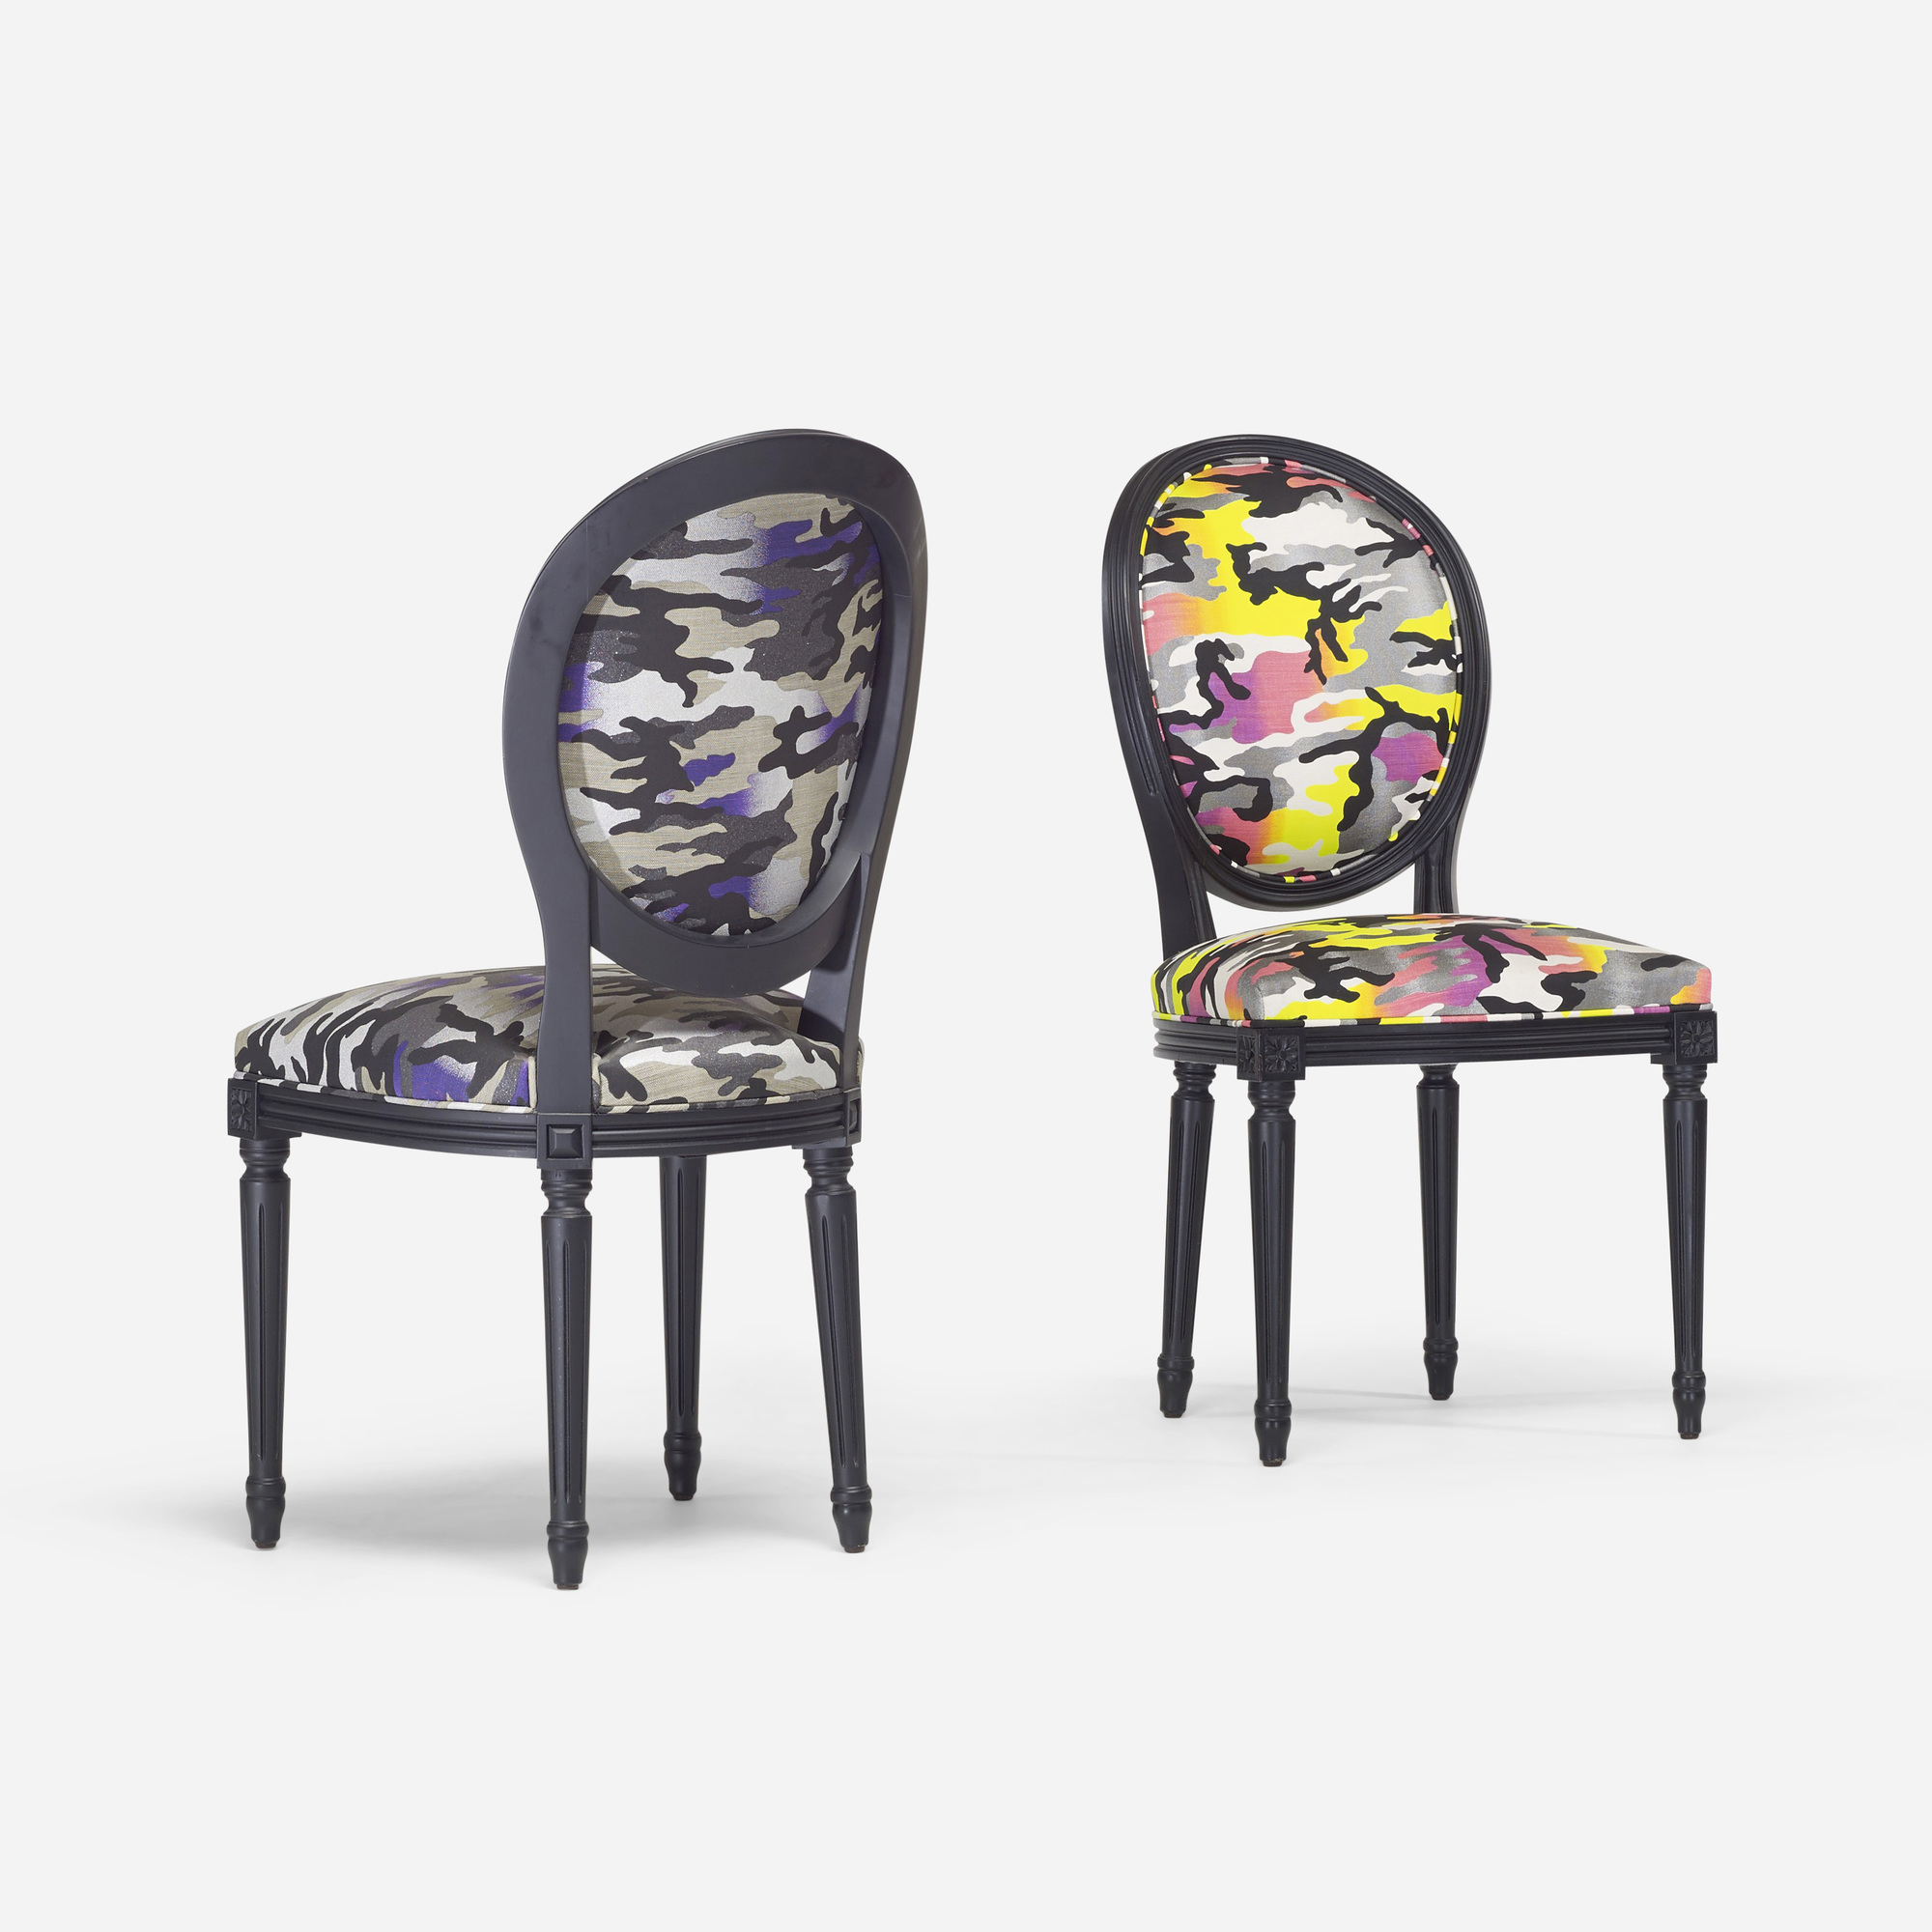 268: Anselm Reyle for Dior / custom Louis XVI chairs, pair (2 of 3)